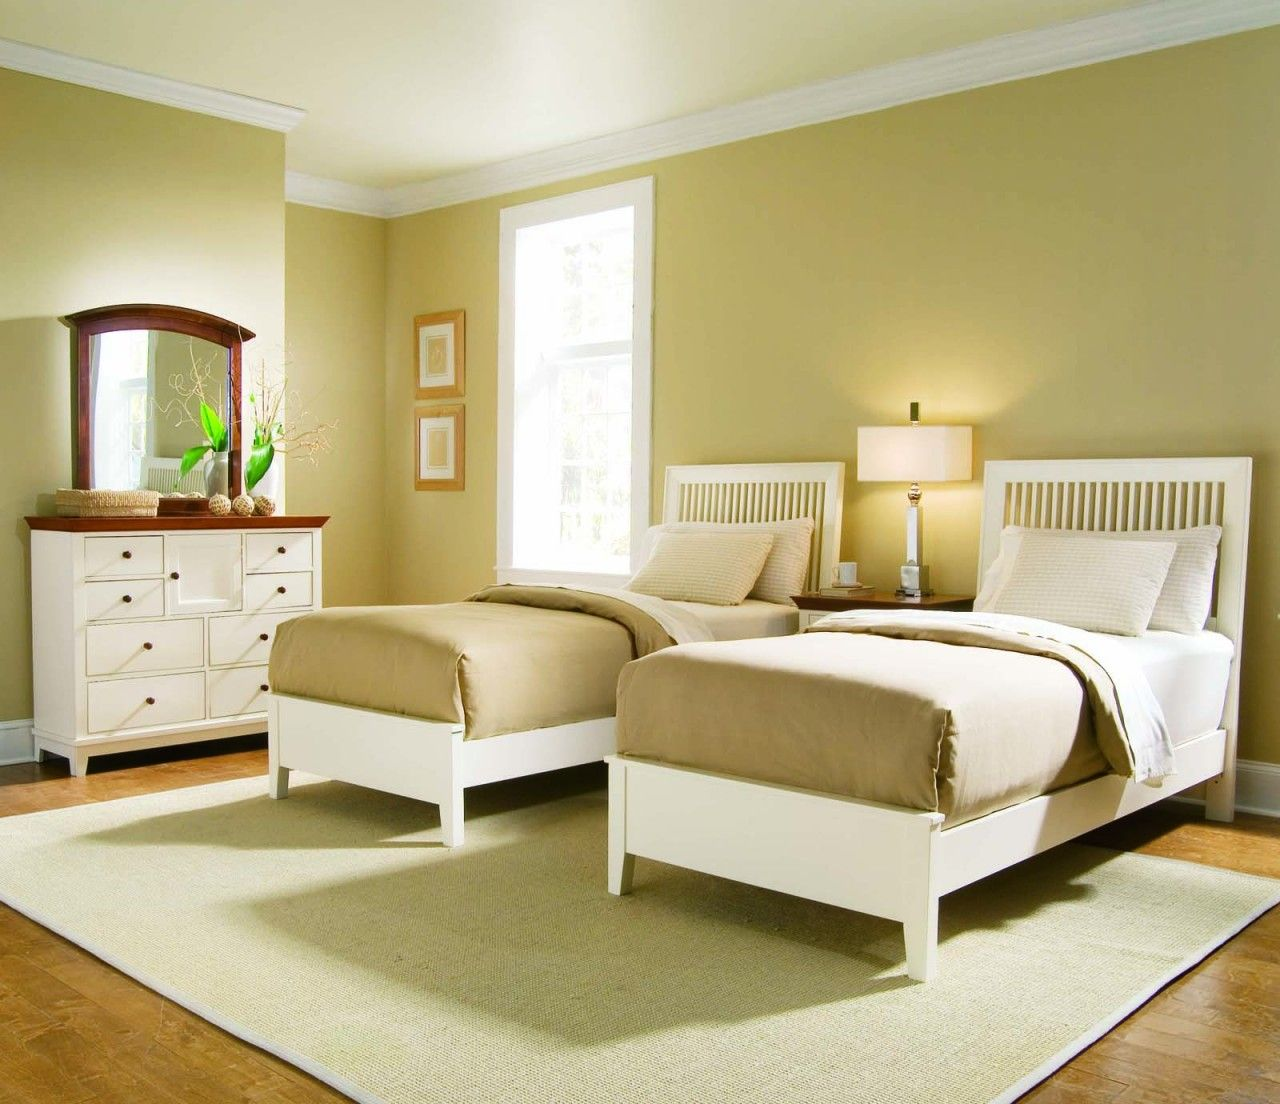 Simple Twin Bedroom Set Idea for Girls with Golden Brown Wall Paint ...